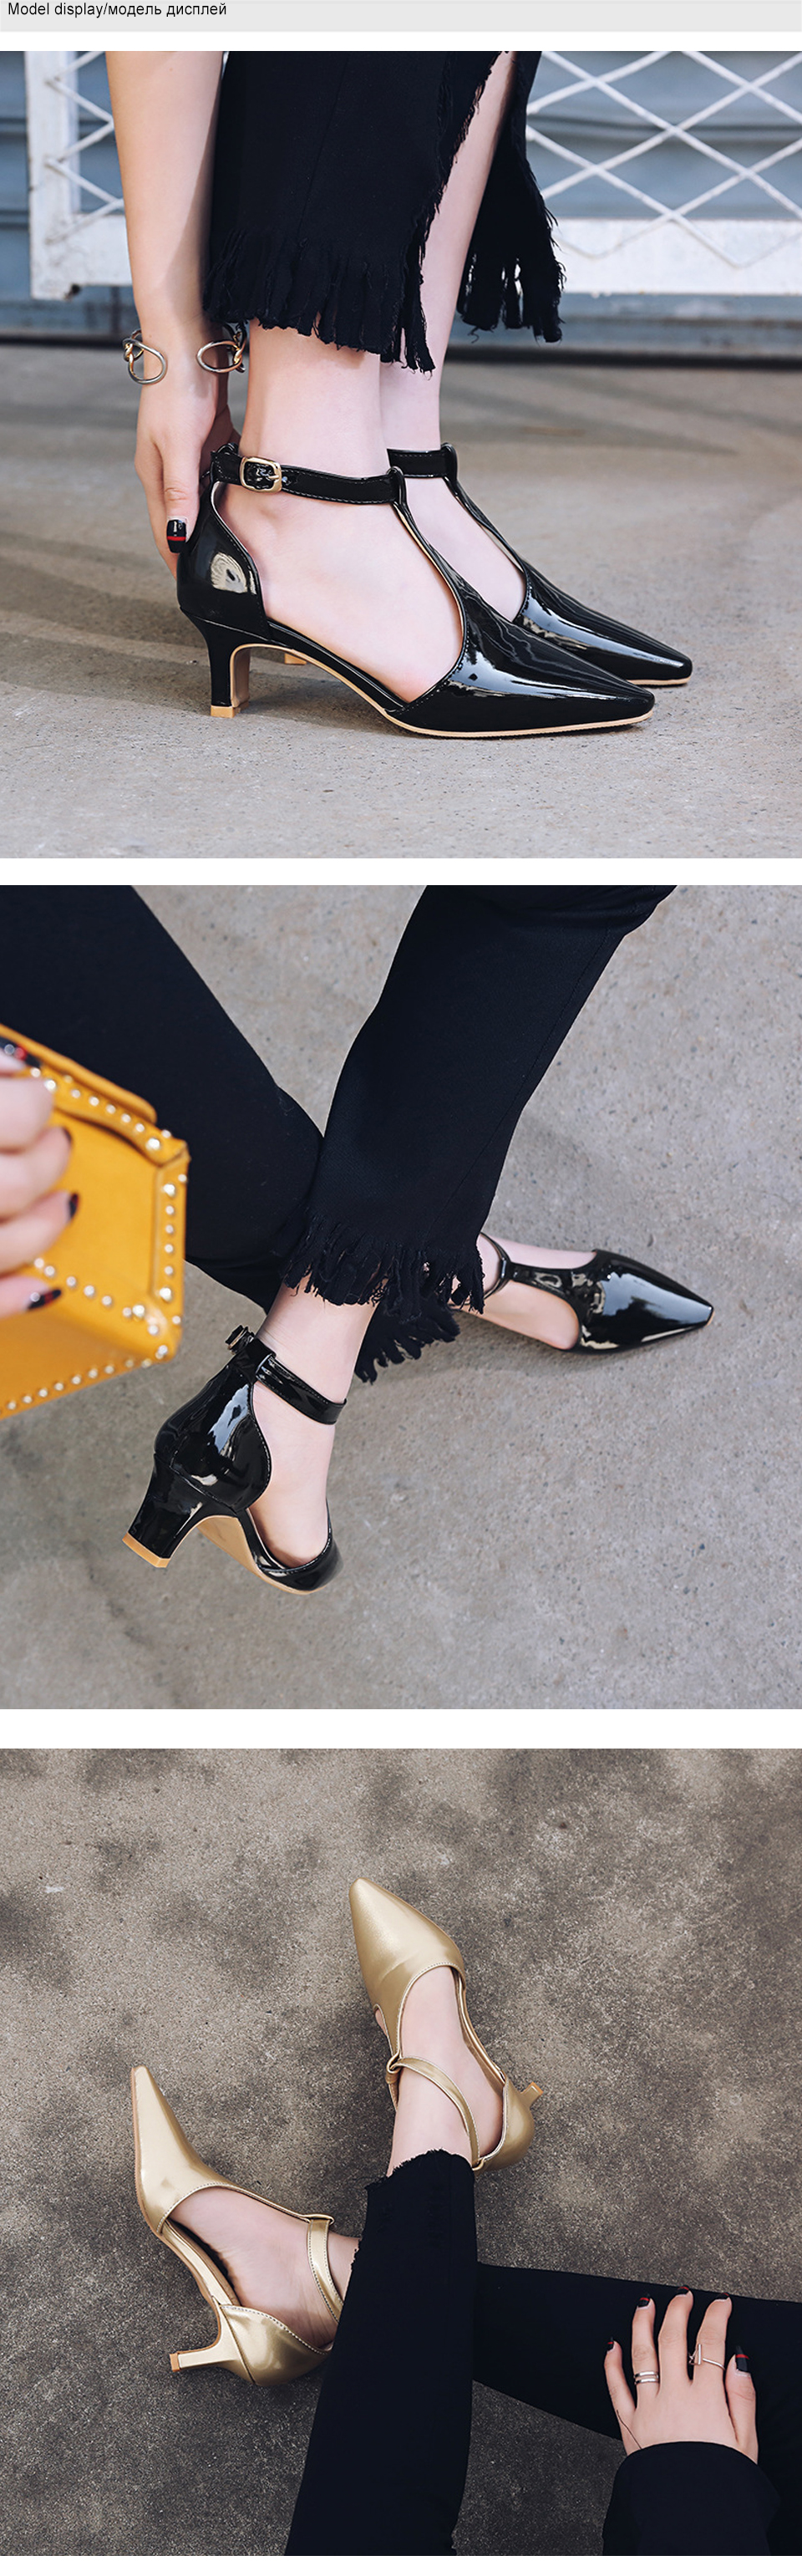 Shoes Woman High Heels Mary Jane Pointed Toe Women Pumps Brand Ankle Strap Summer Shoes Thin Heel Black Plus Size New Arrvial DE 4